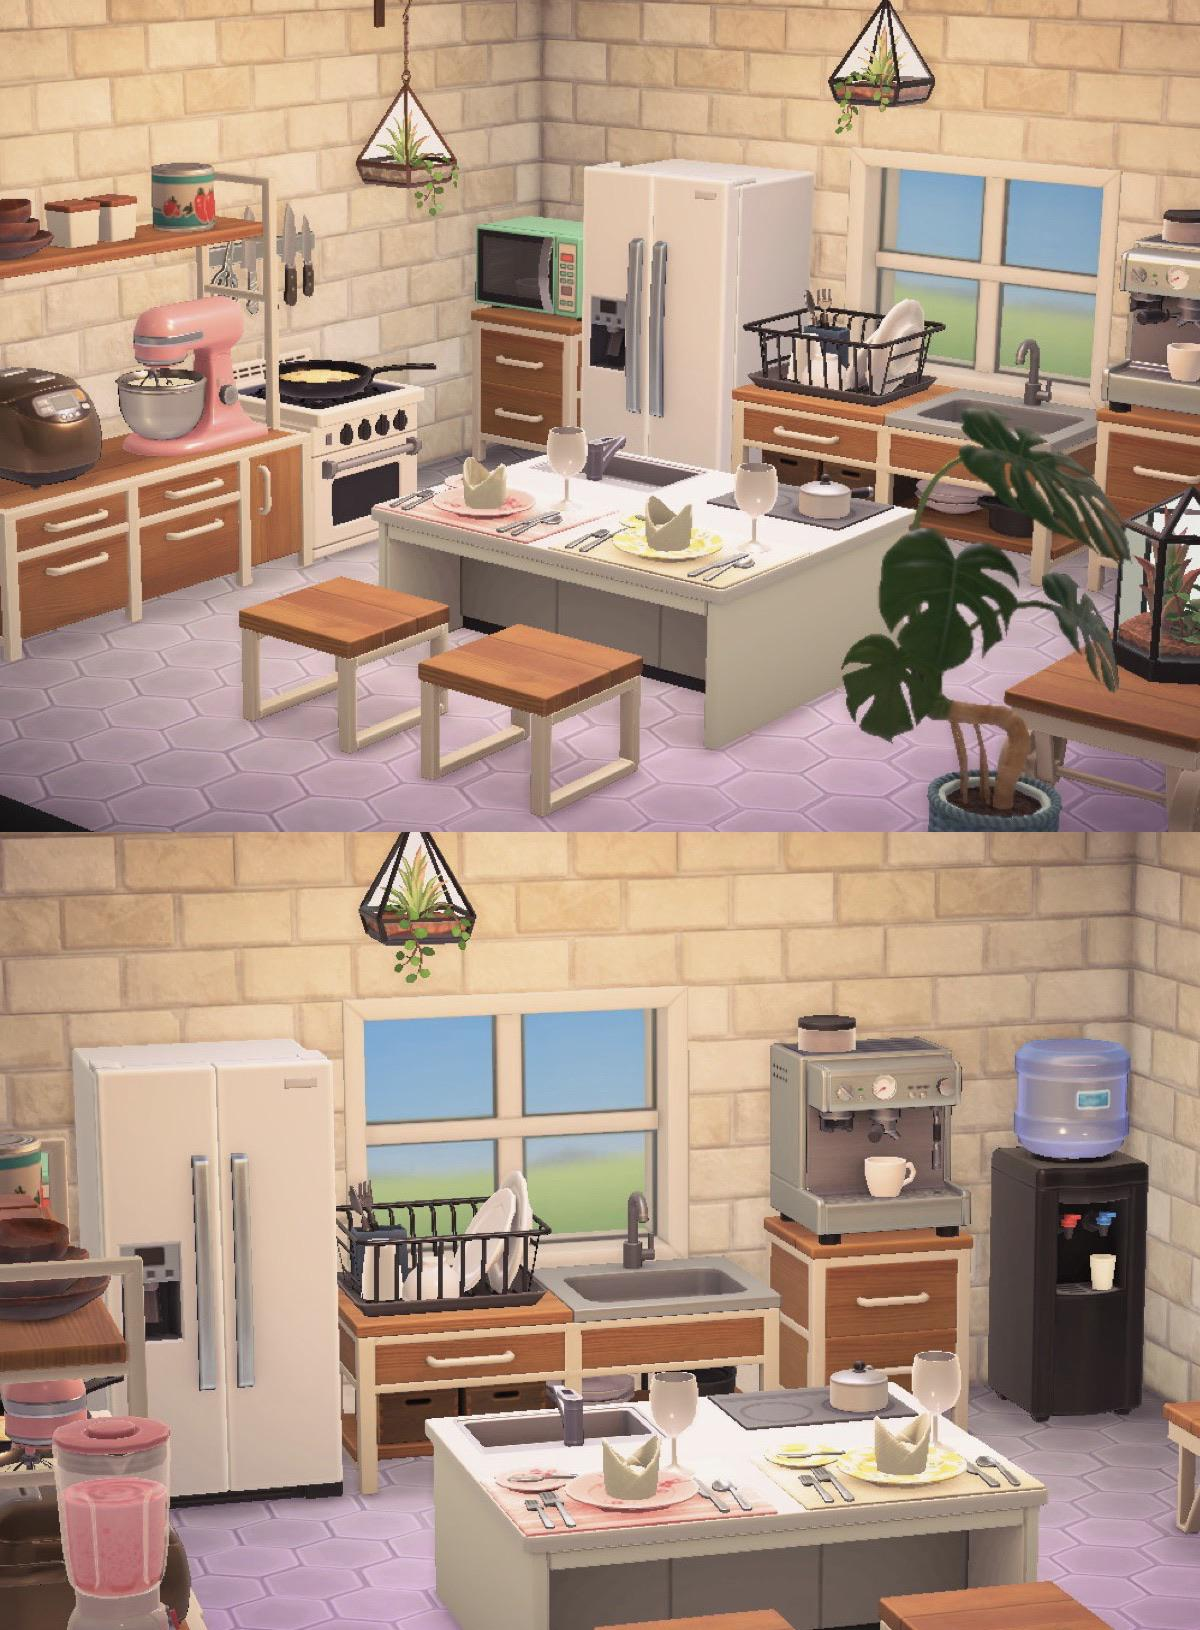 Finally completed my kitchen! I'm so proud! : AnimalCrossing on Animal Crossing Kitchen Island  id=12976